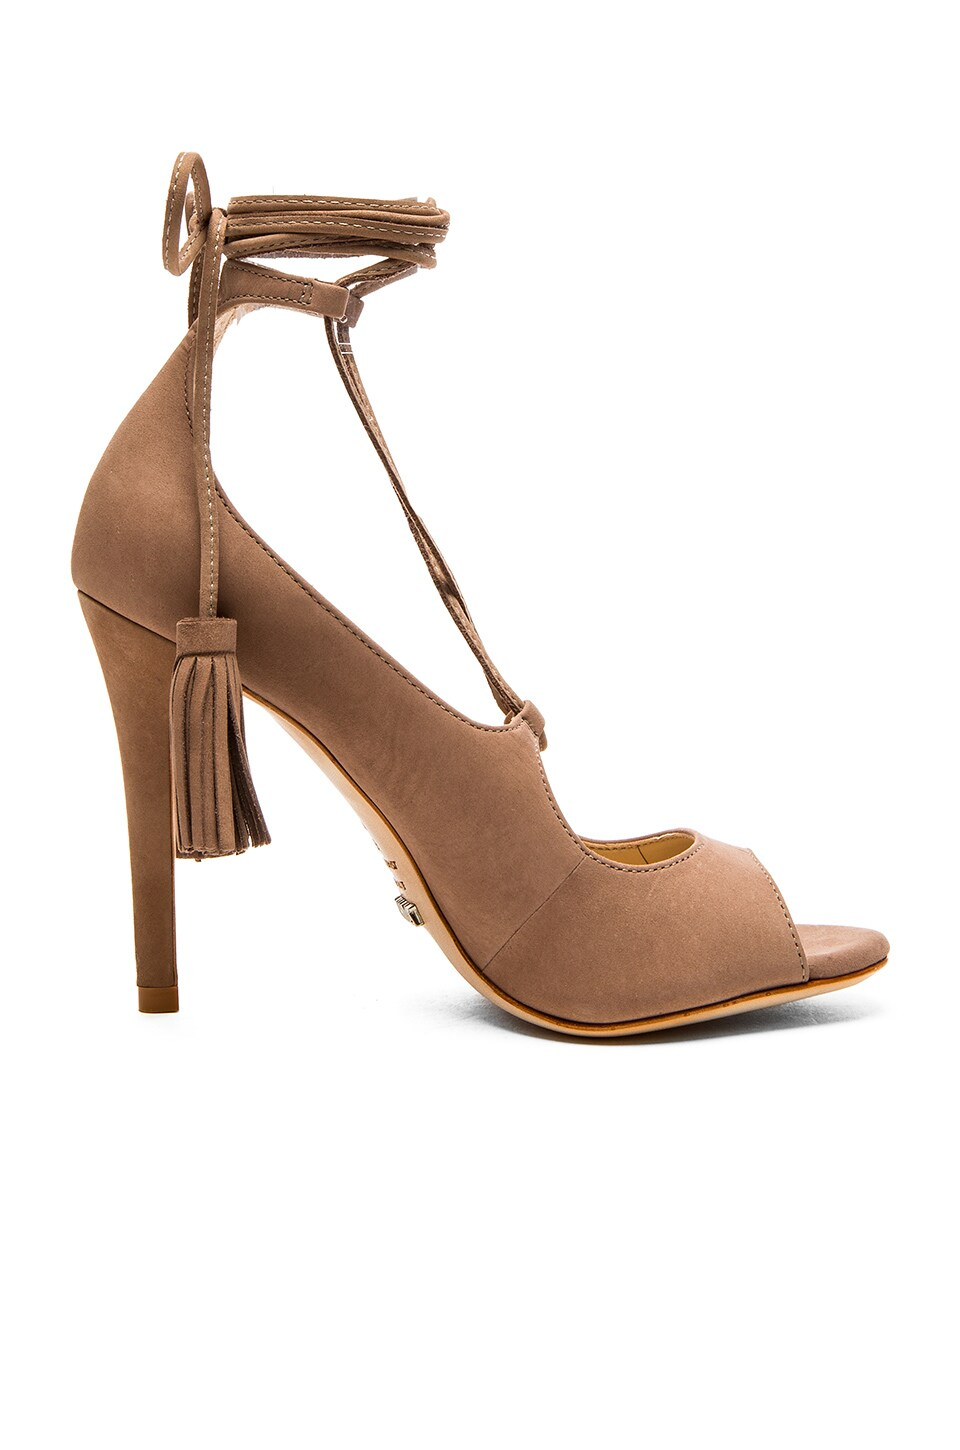 Schutz Yassu Heel in Neutral